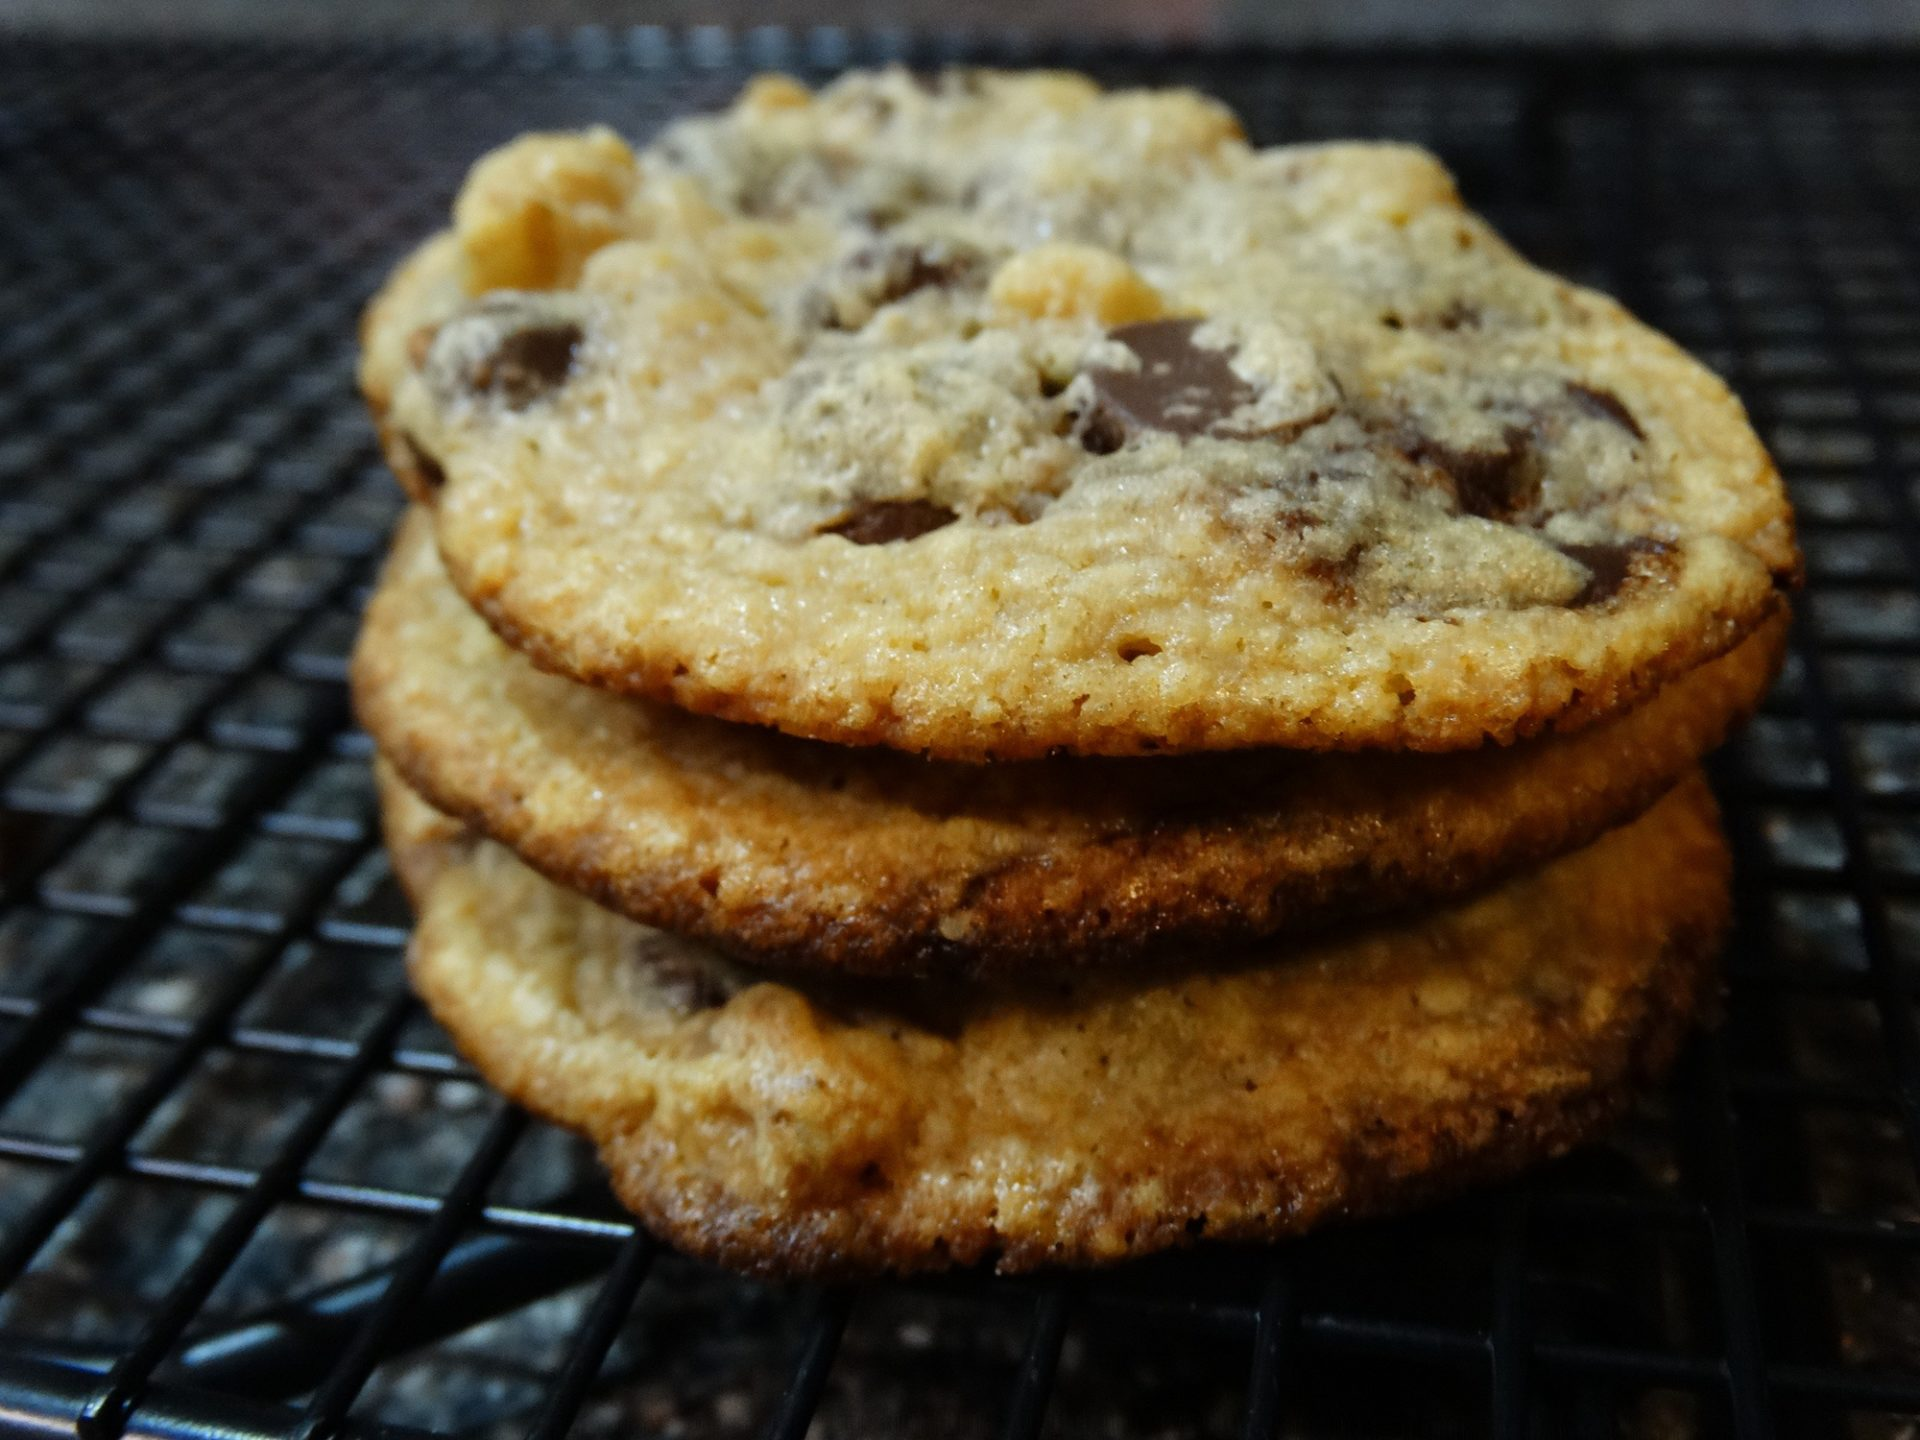 Delicious bakeable keto and thm friendly sugar free , gluten free chocolate chip cookie mix.